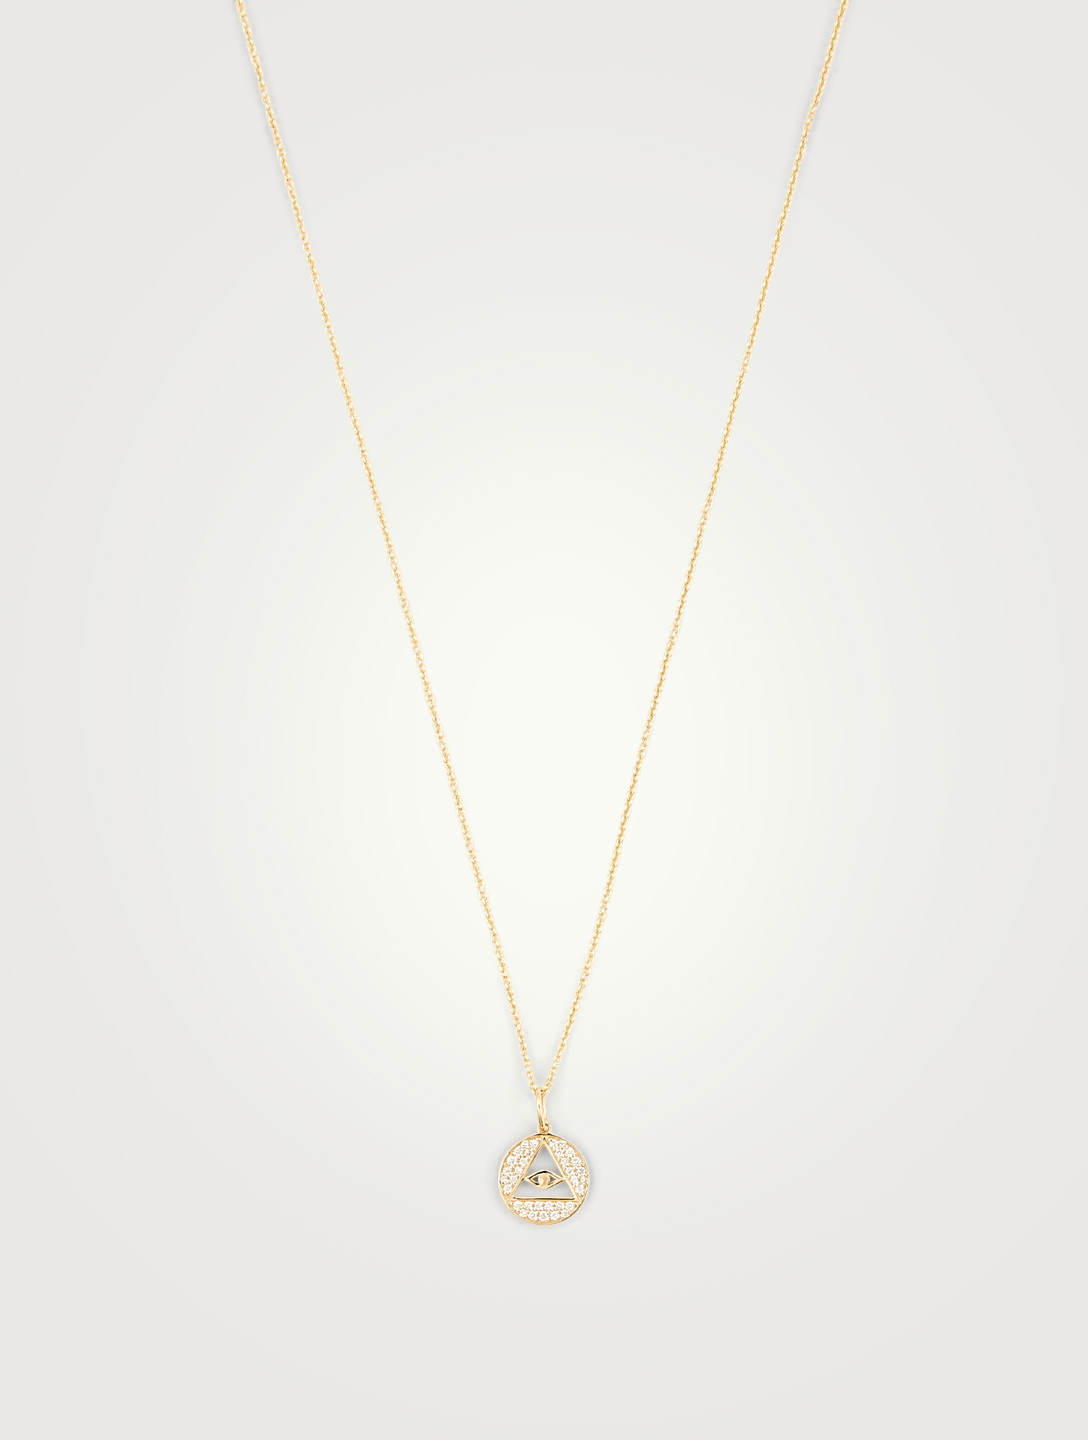 SYDNEY EVAN Medium 14K Gold Pyramid Evil Eye Necklace With Diamonds Women's Metallic